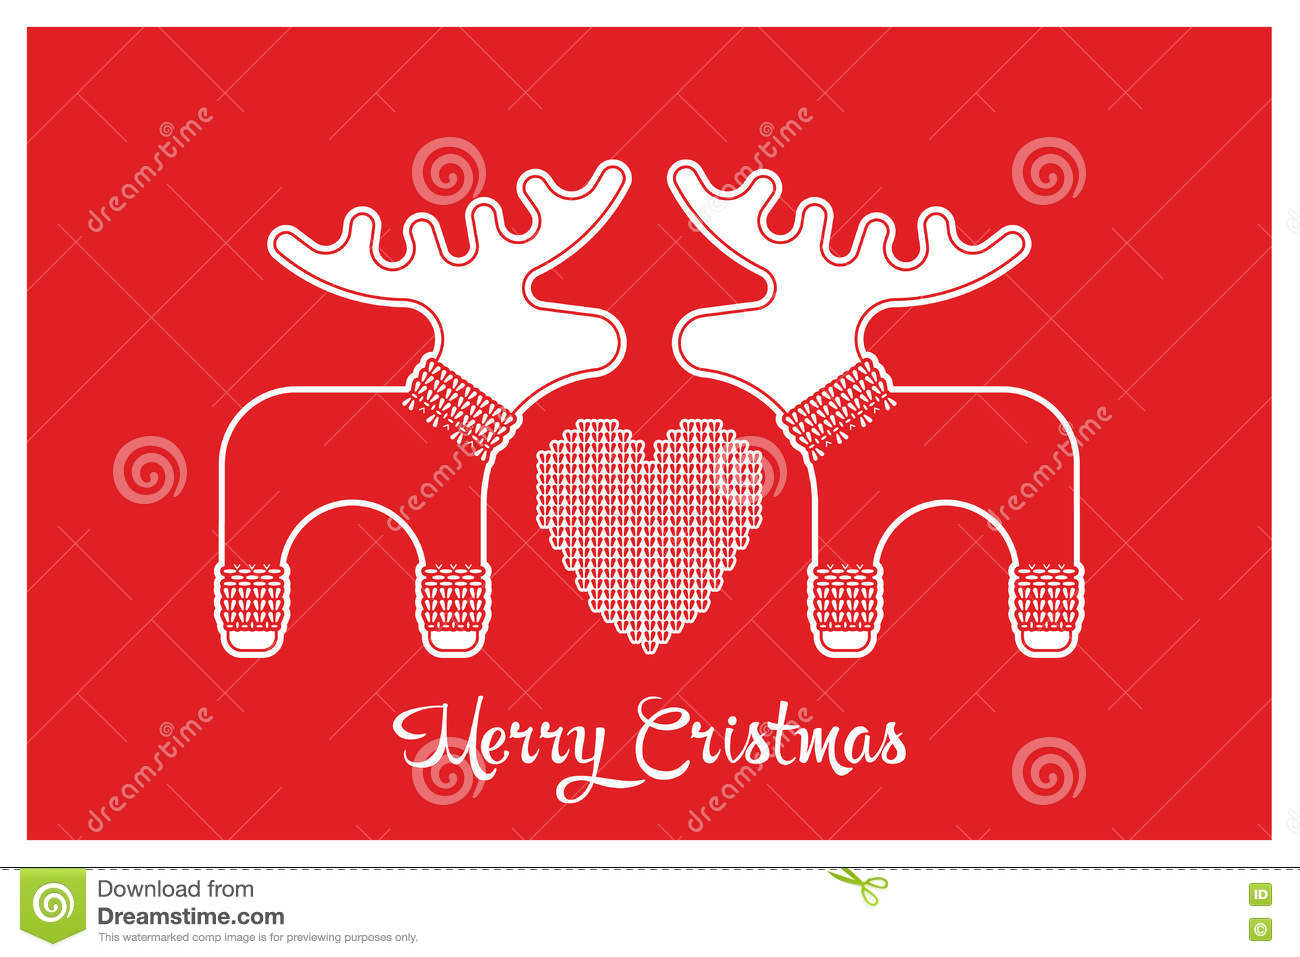 643cbf80382fe0 Vector xmas cute greeting card with adorable reindeer and elk in knitted  sweaters. Xmas card with a wish a Merry Christmas.